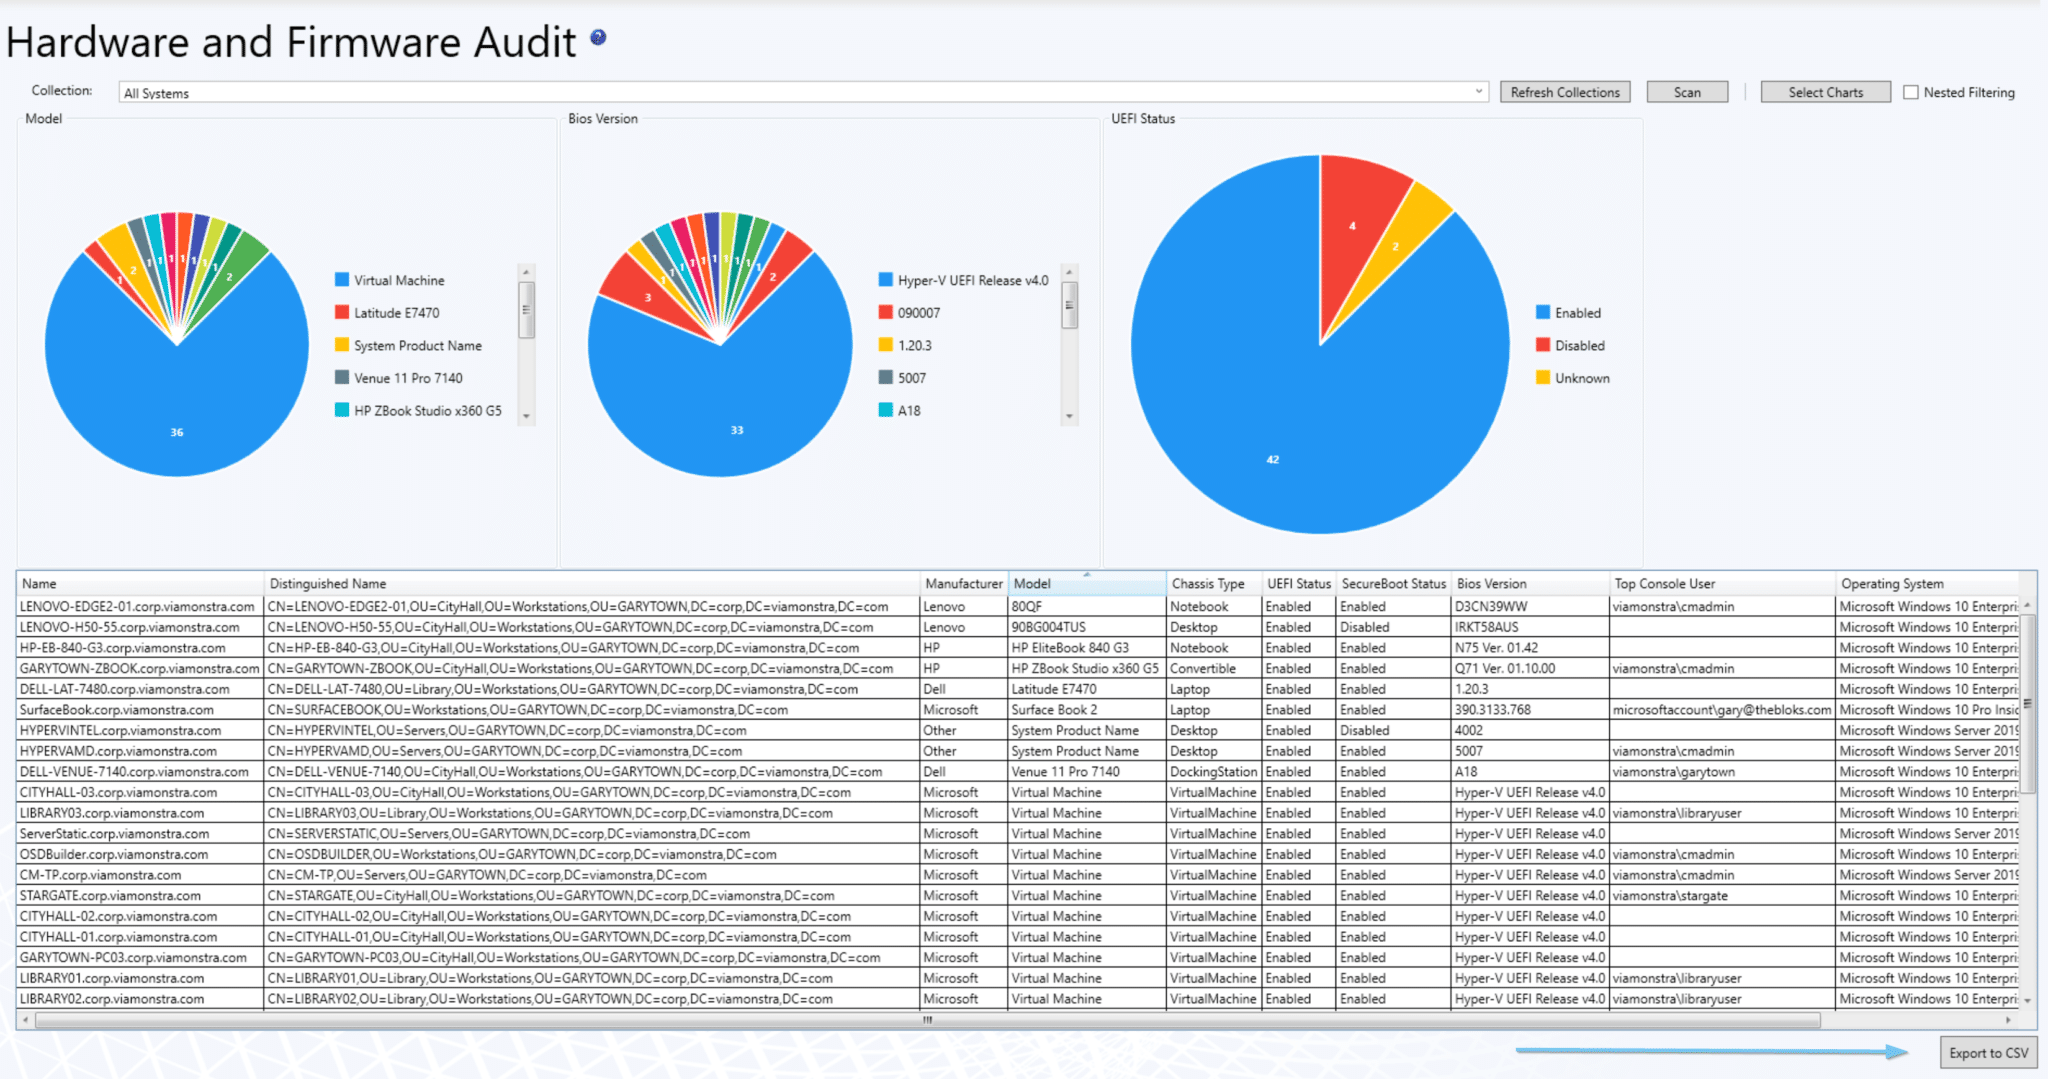 Hardware and Firmware Audits export